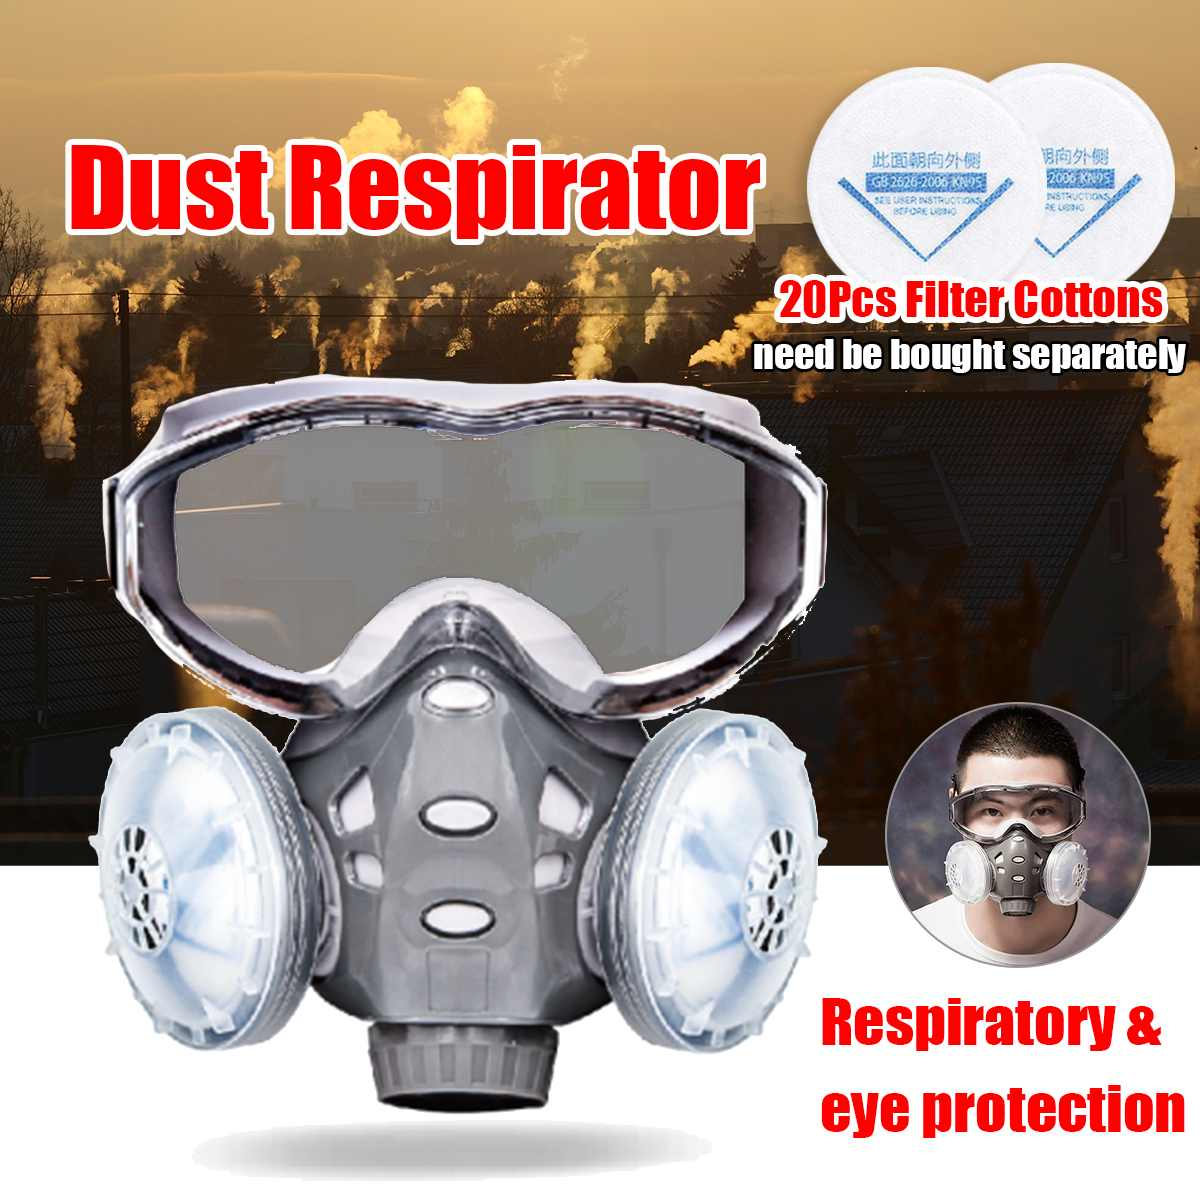 308 8200 Dust Mask Respirator With Safety Glasses KN95 Dual Filters Full Face Mask Dust-proof For Carpenter Builder Polishing